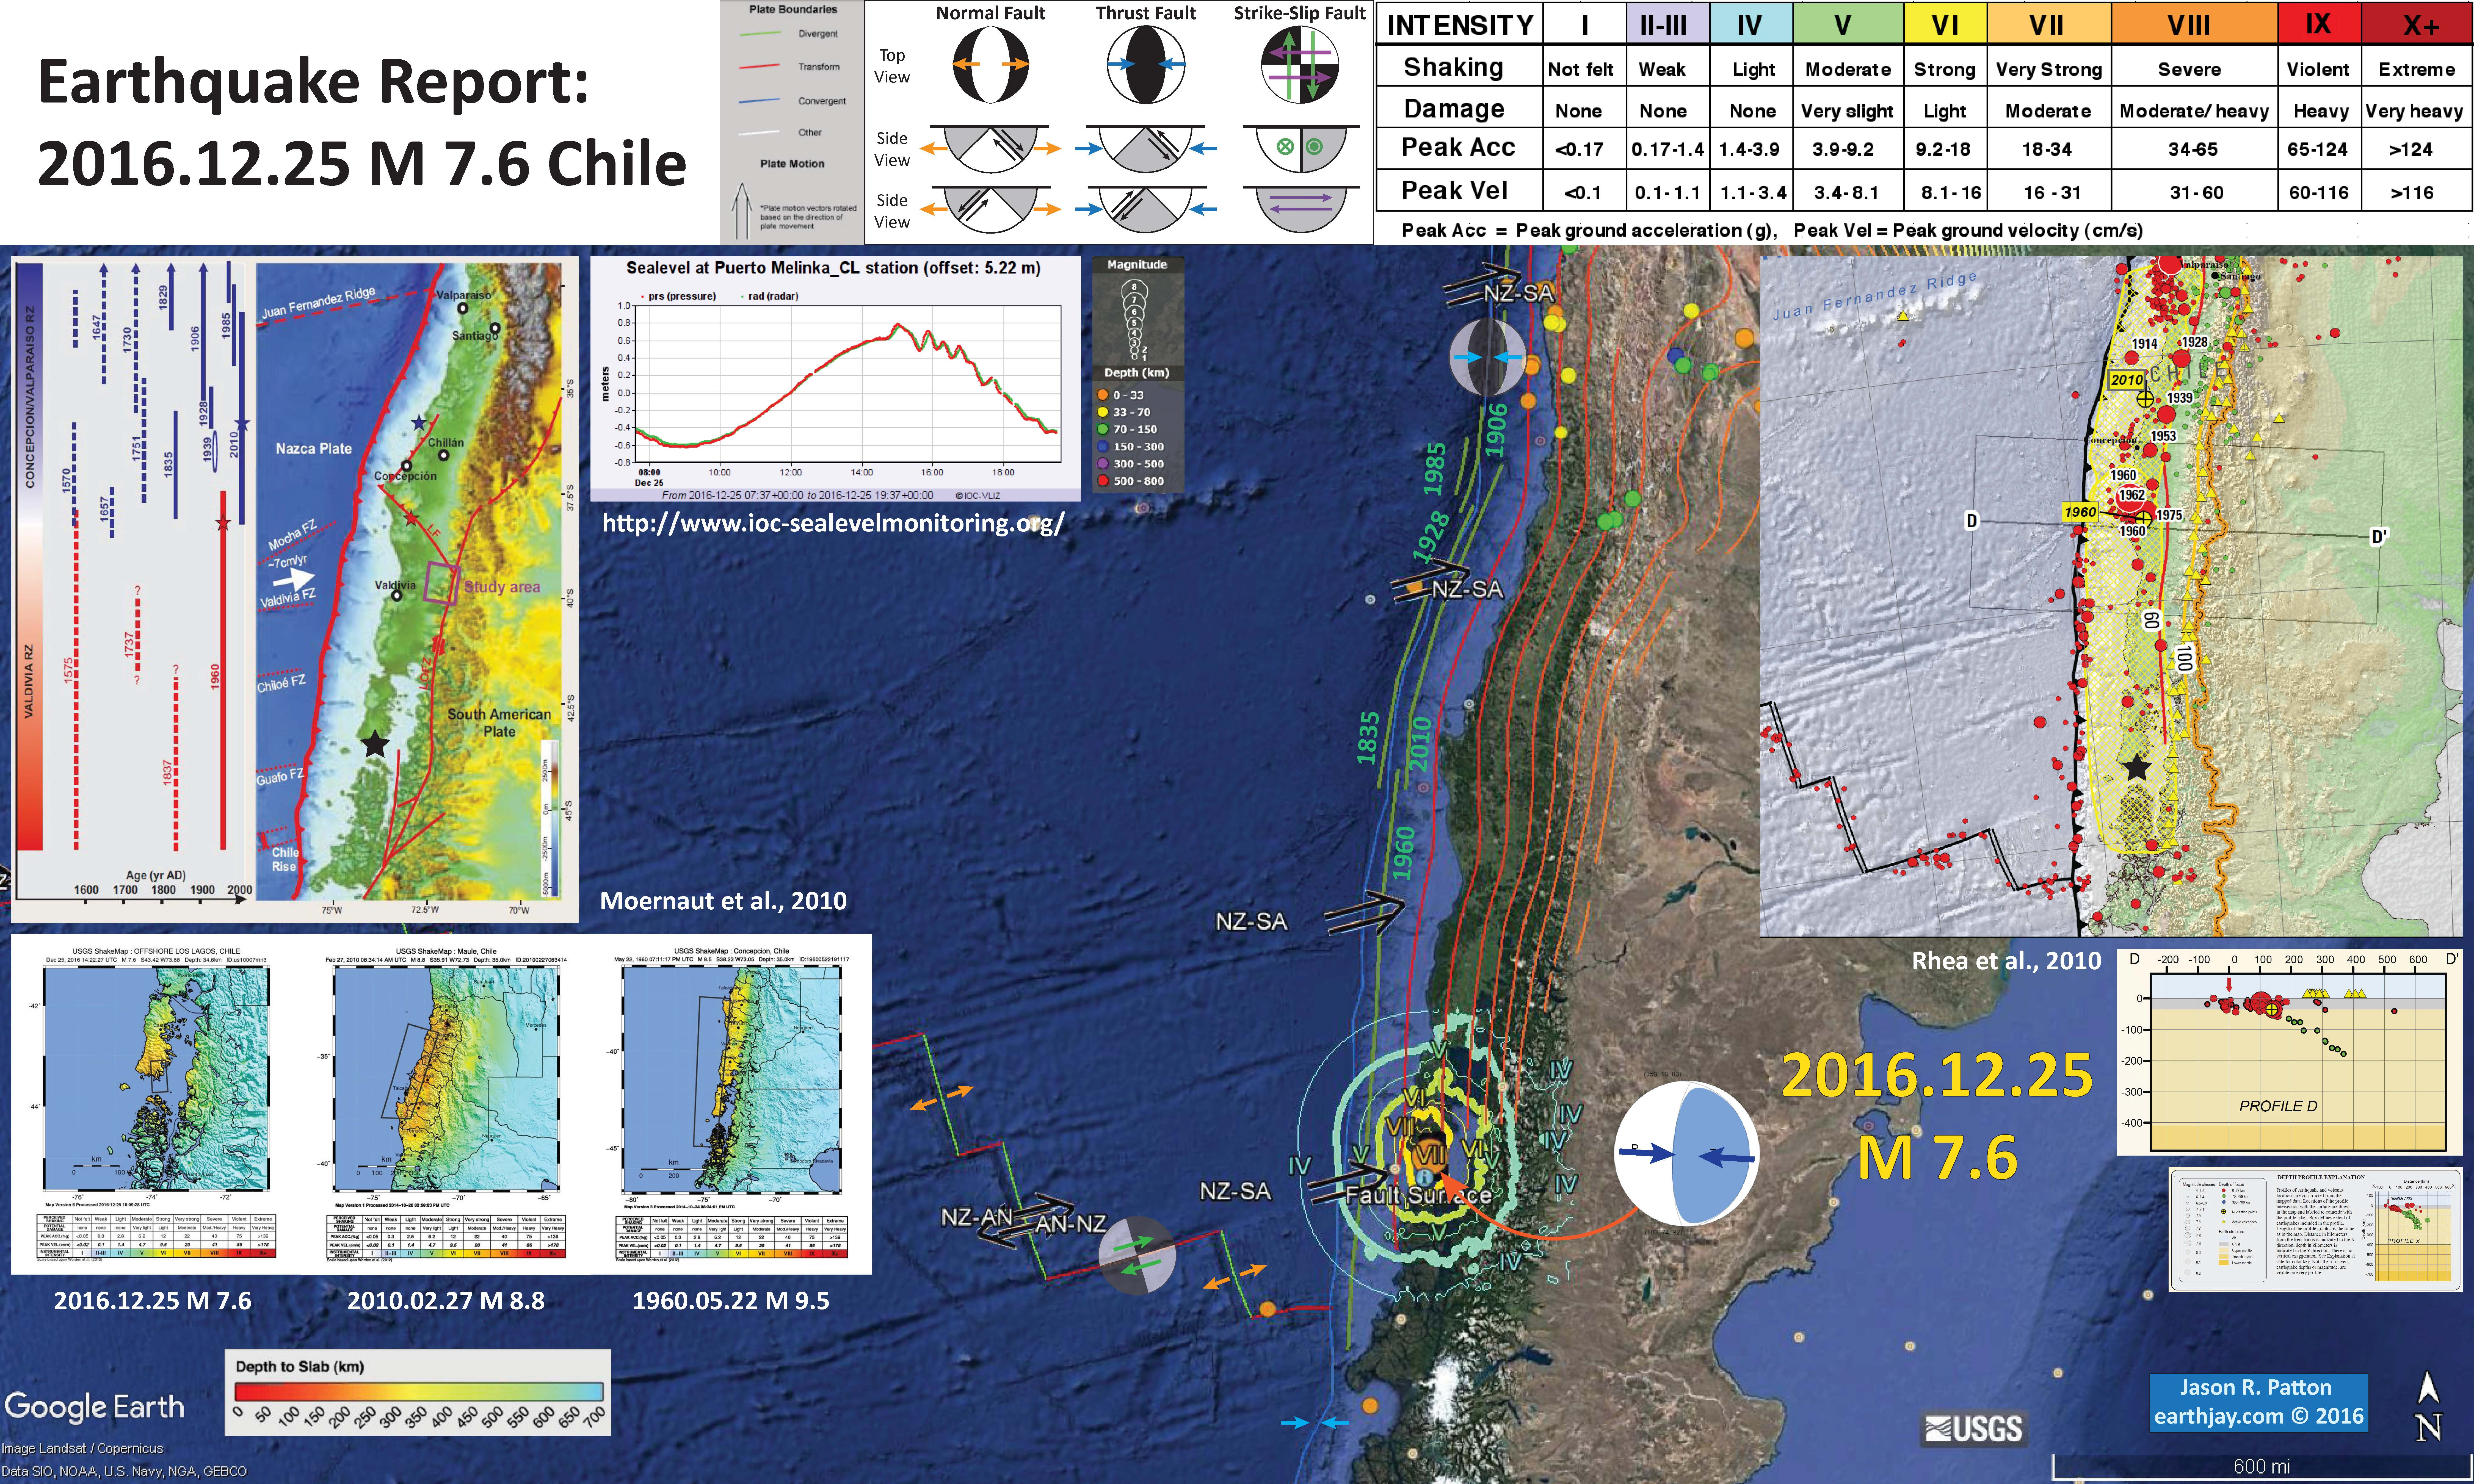 Earthquake report chile jay patton online this map shows the mmi contours for the 1960 and 2010 earthquakes in addition to this 2016 earthquake this helps us visualize the spatial extent for these gumiabroncs Gallery